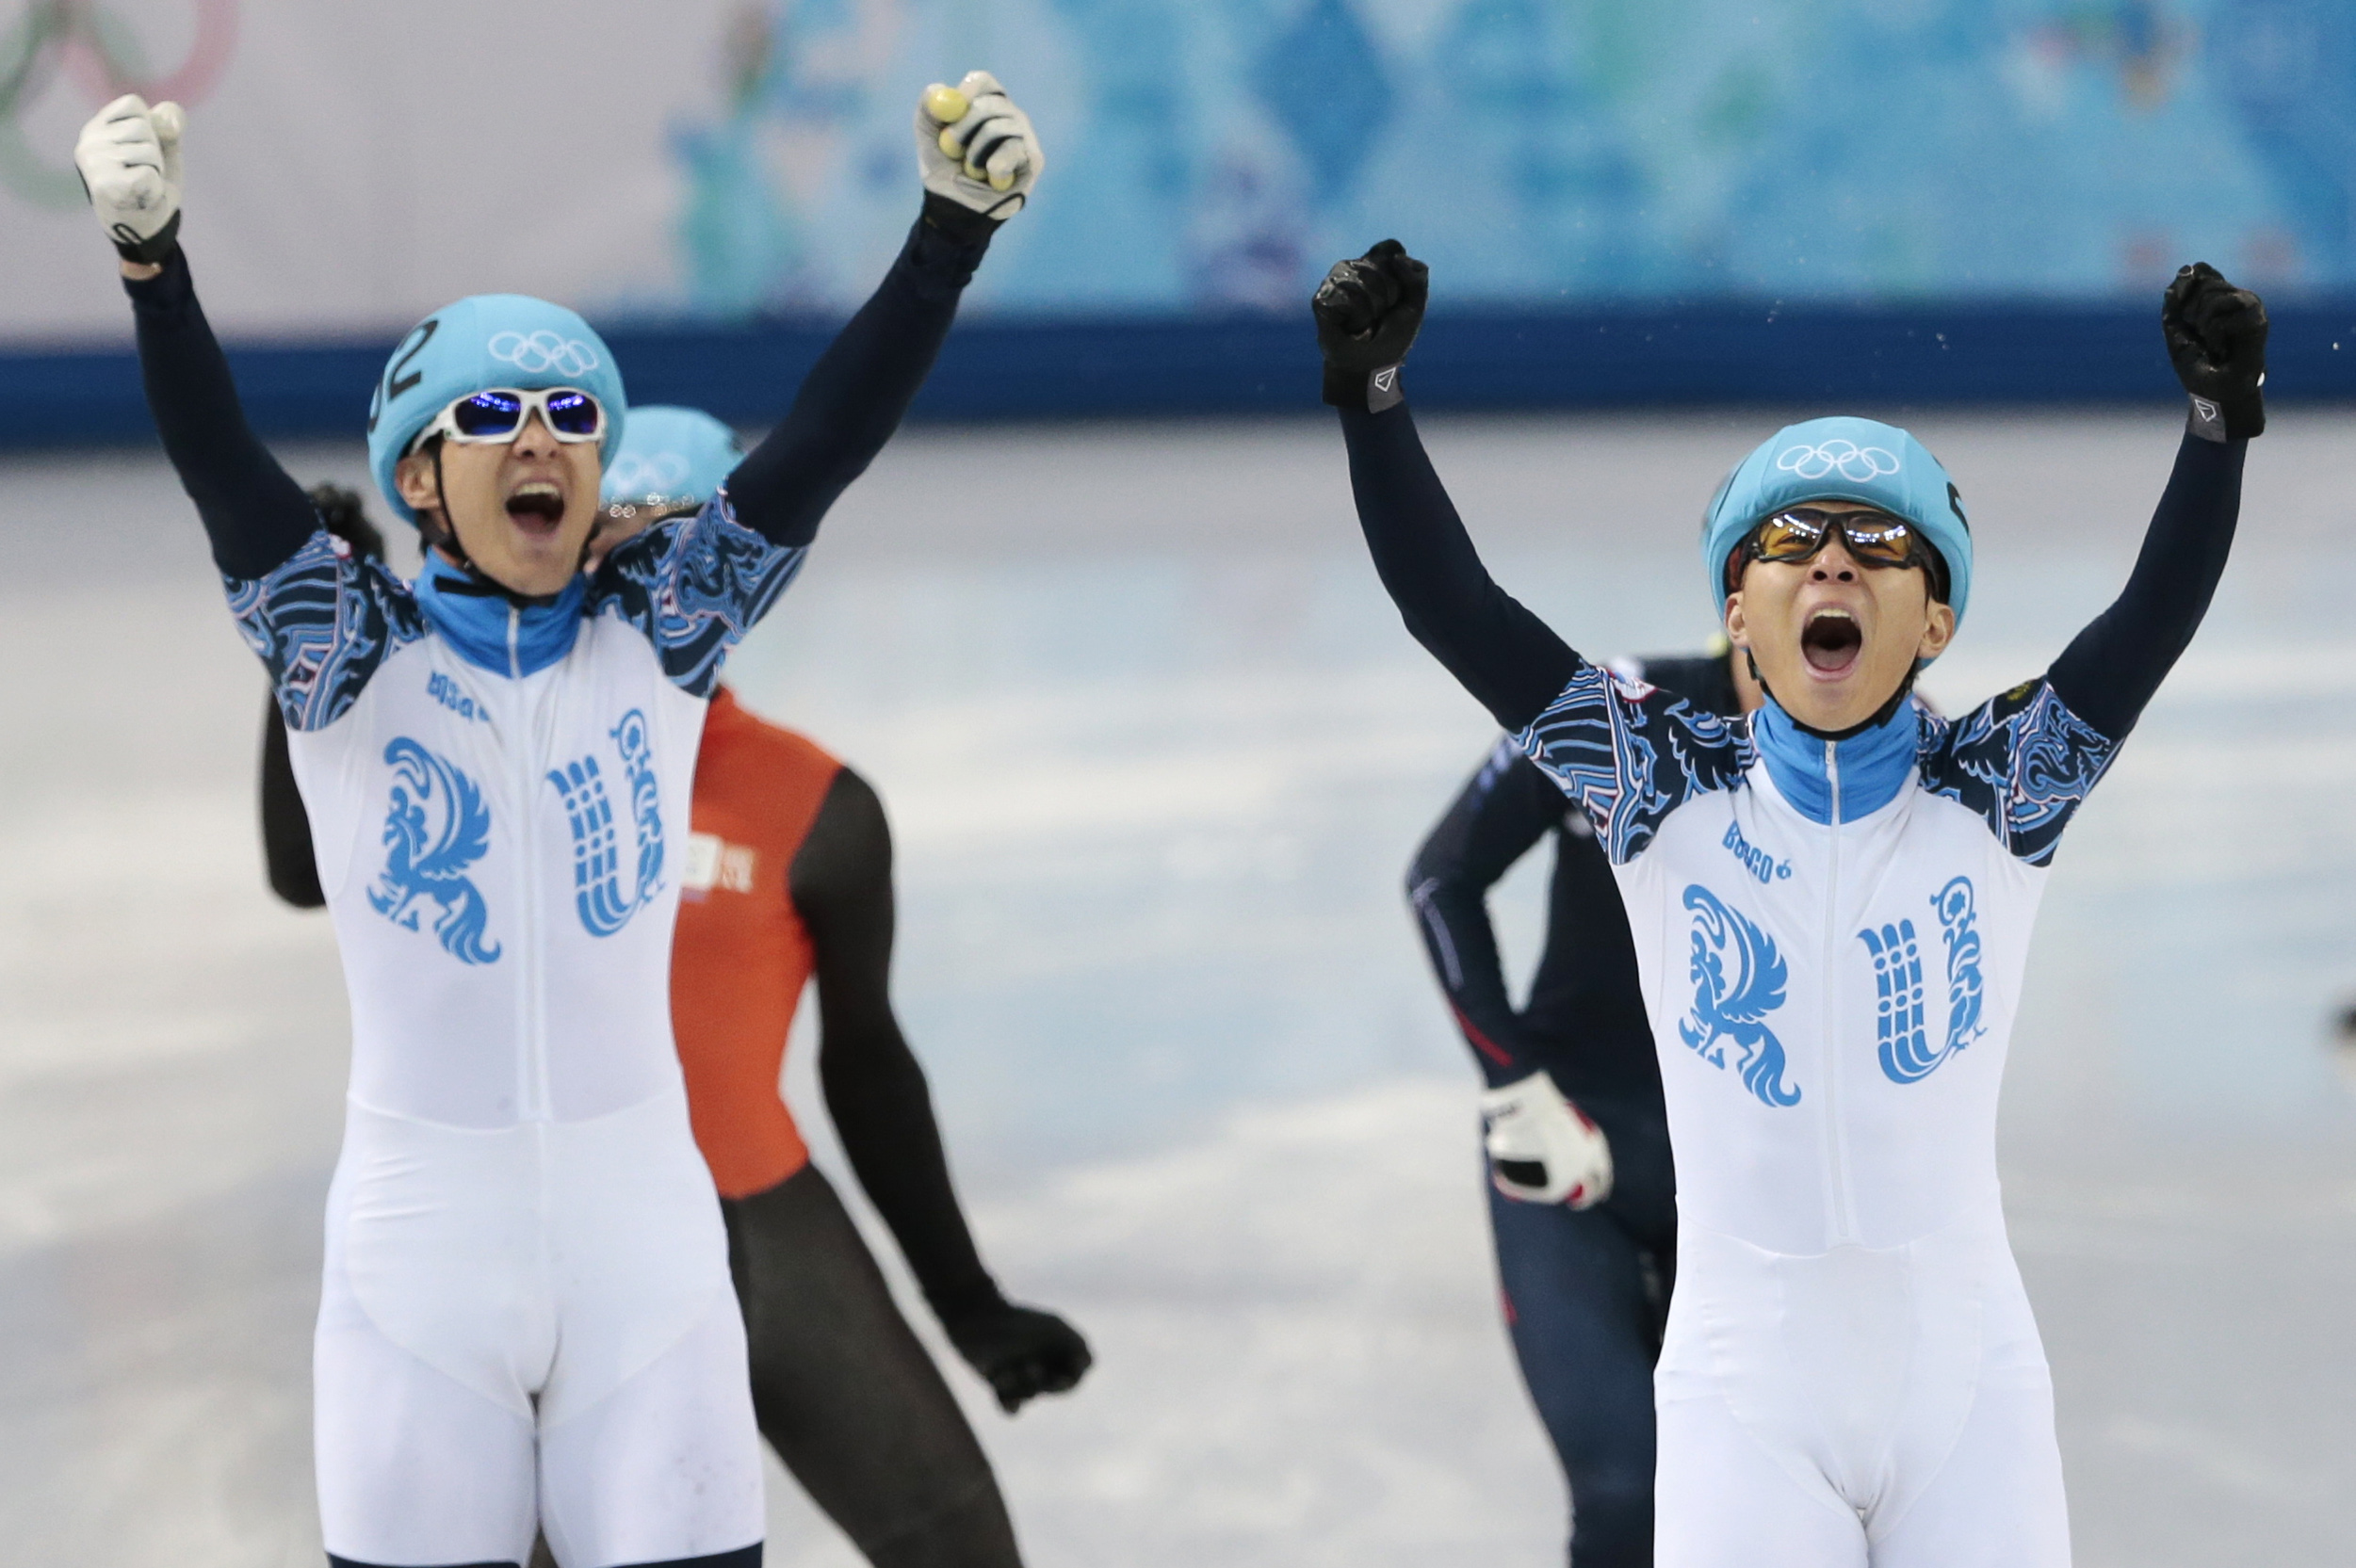 Viktor Ahn of Russia, right, celebrates winning in a men's 1000m short track speedskating final with second placed Vladimir Grigorev of Russia, left, at the Iceberg Skating Palace during the 2014 Winter Olympics, Saturday, Feb. 15, 2014, in Sochi, Russia. (AP Photo/Ivan Sekretarev)